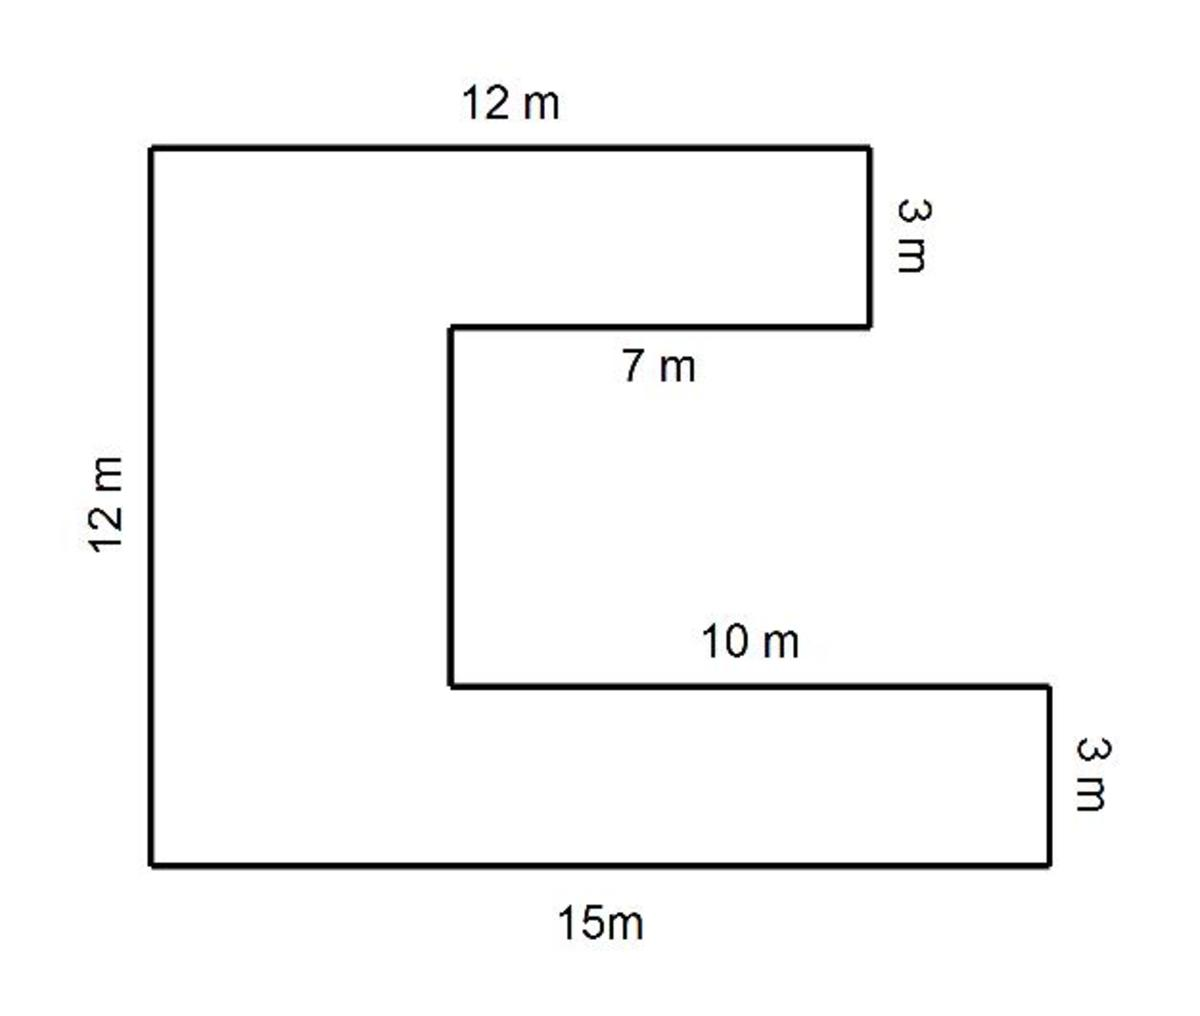 compound c shapes how to calculate the perimeter and area of a c